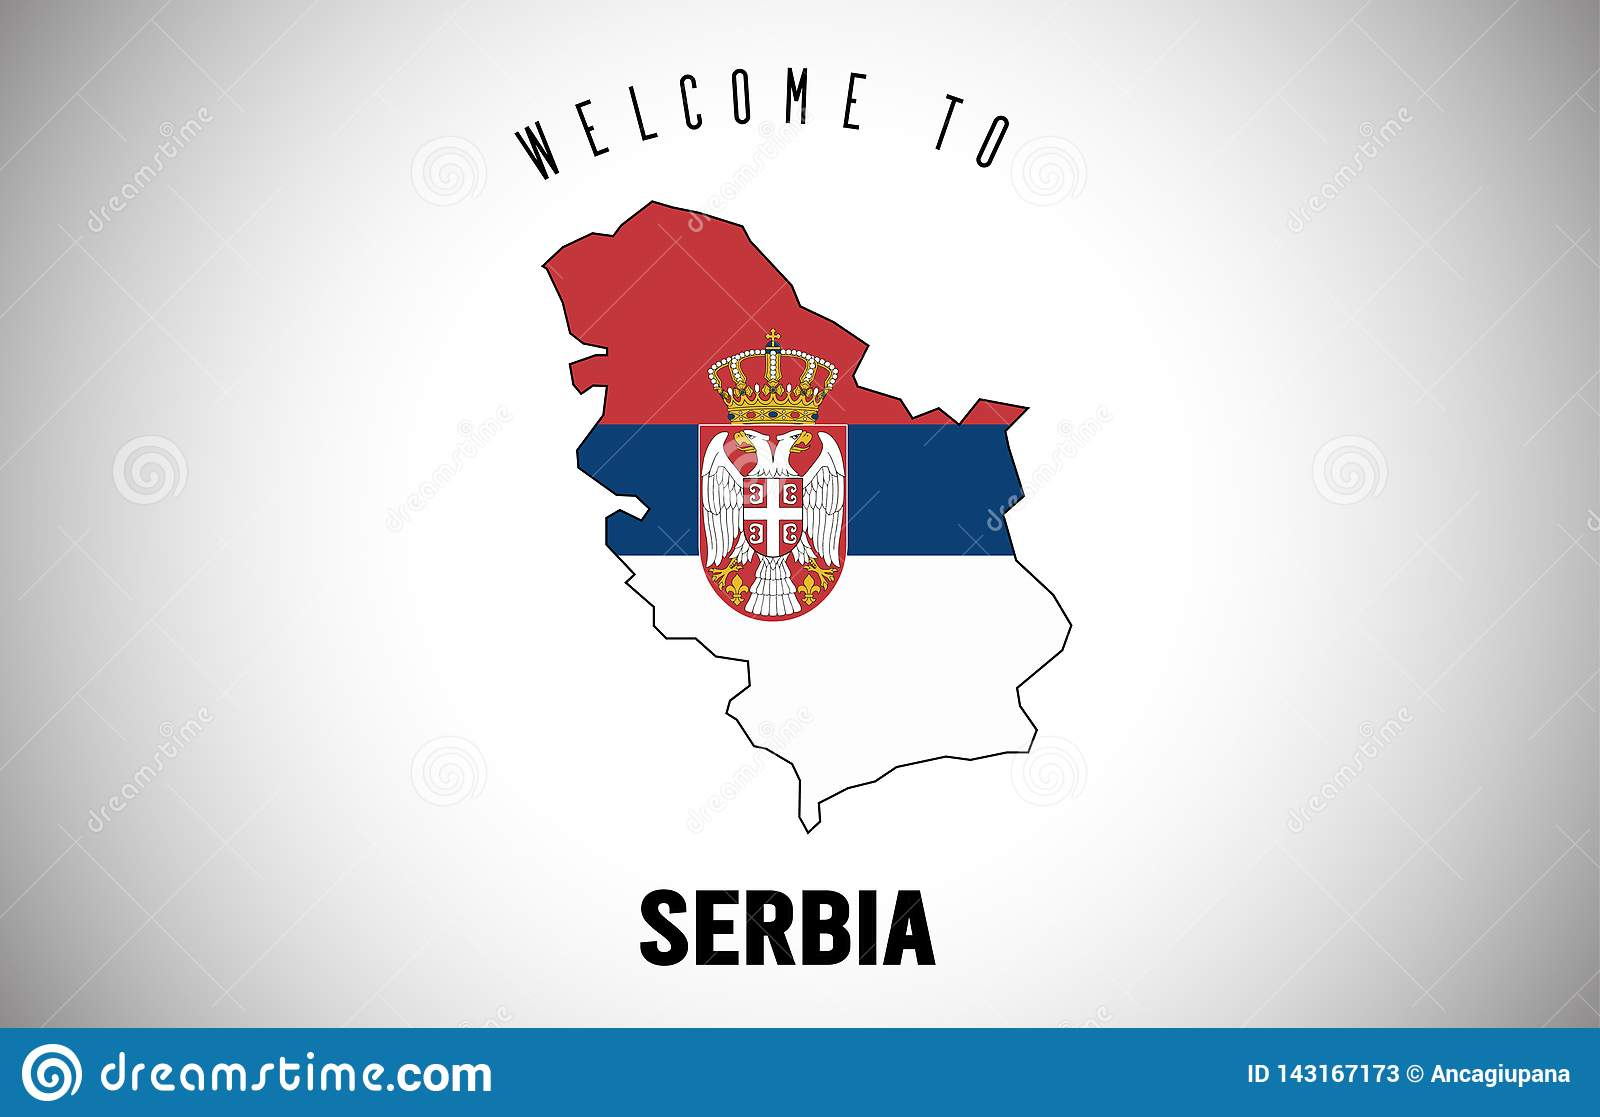 Serbia Welcome to Text and Country flag inside Country border Map Vector Design